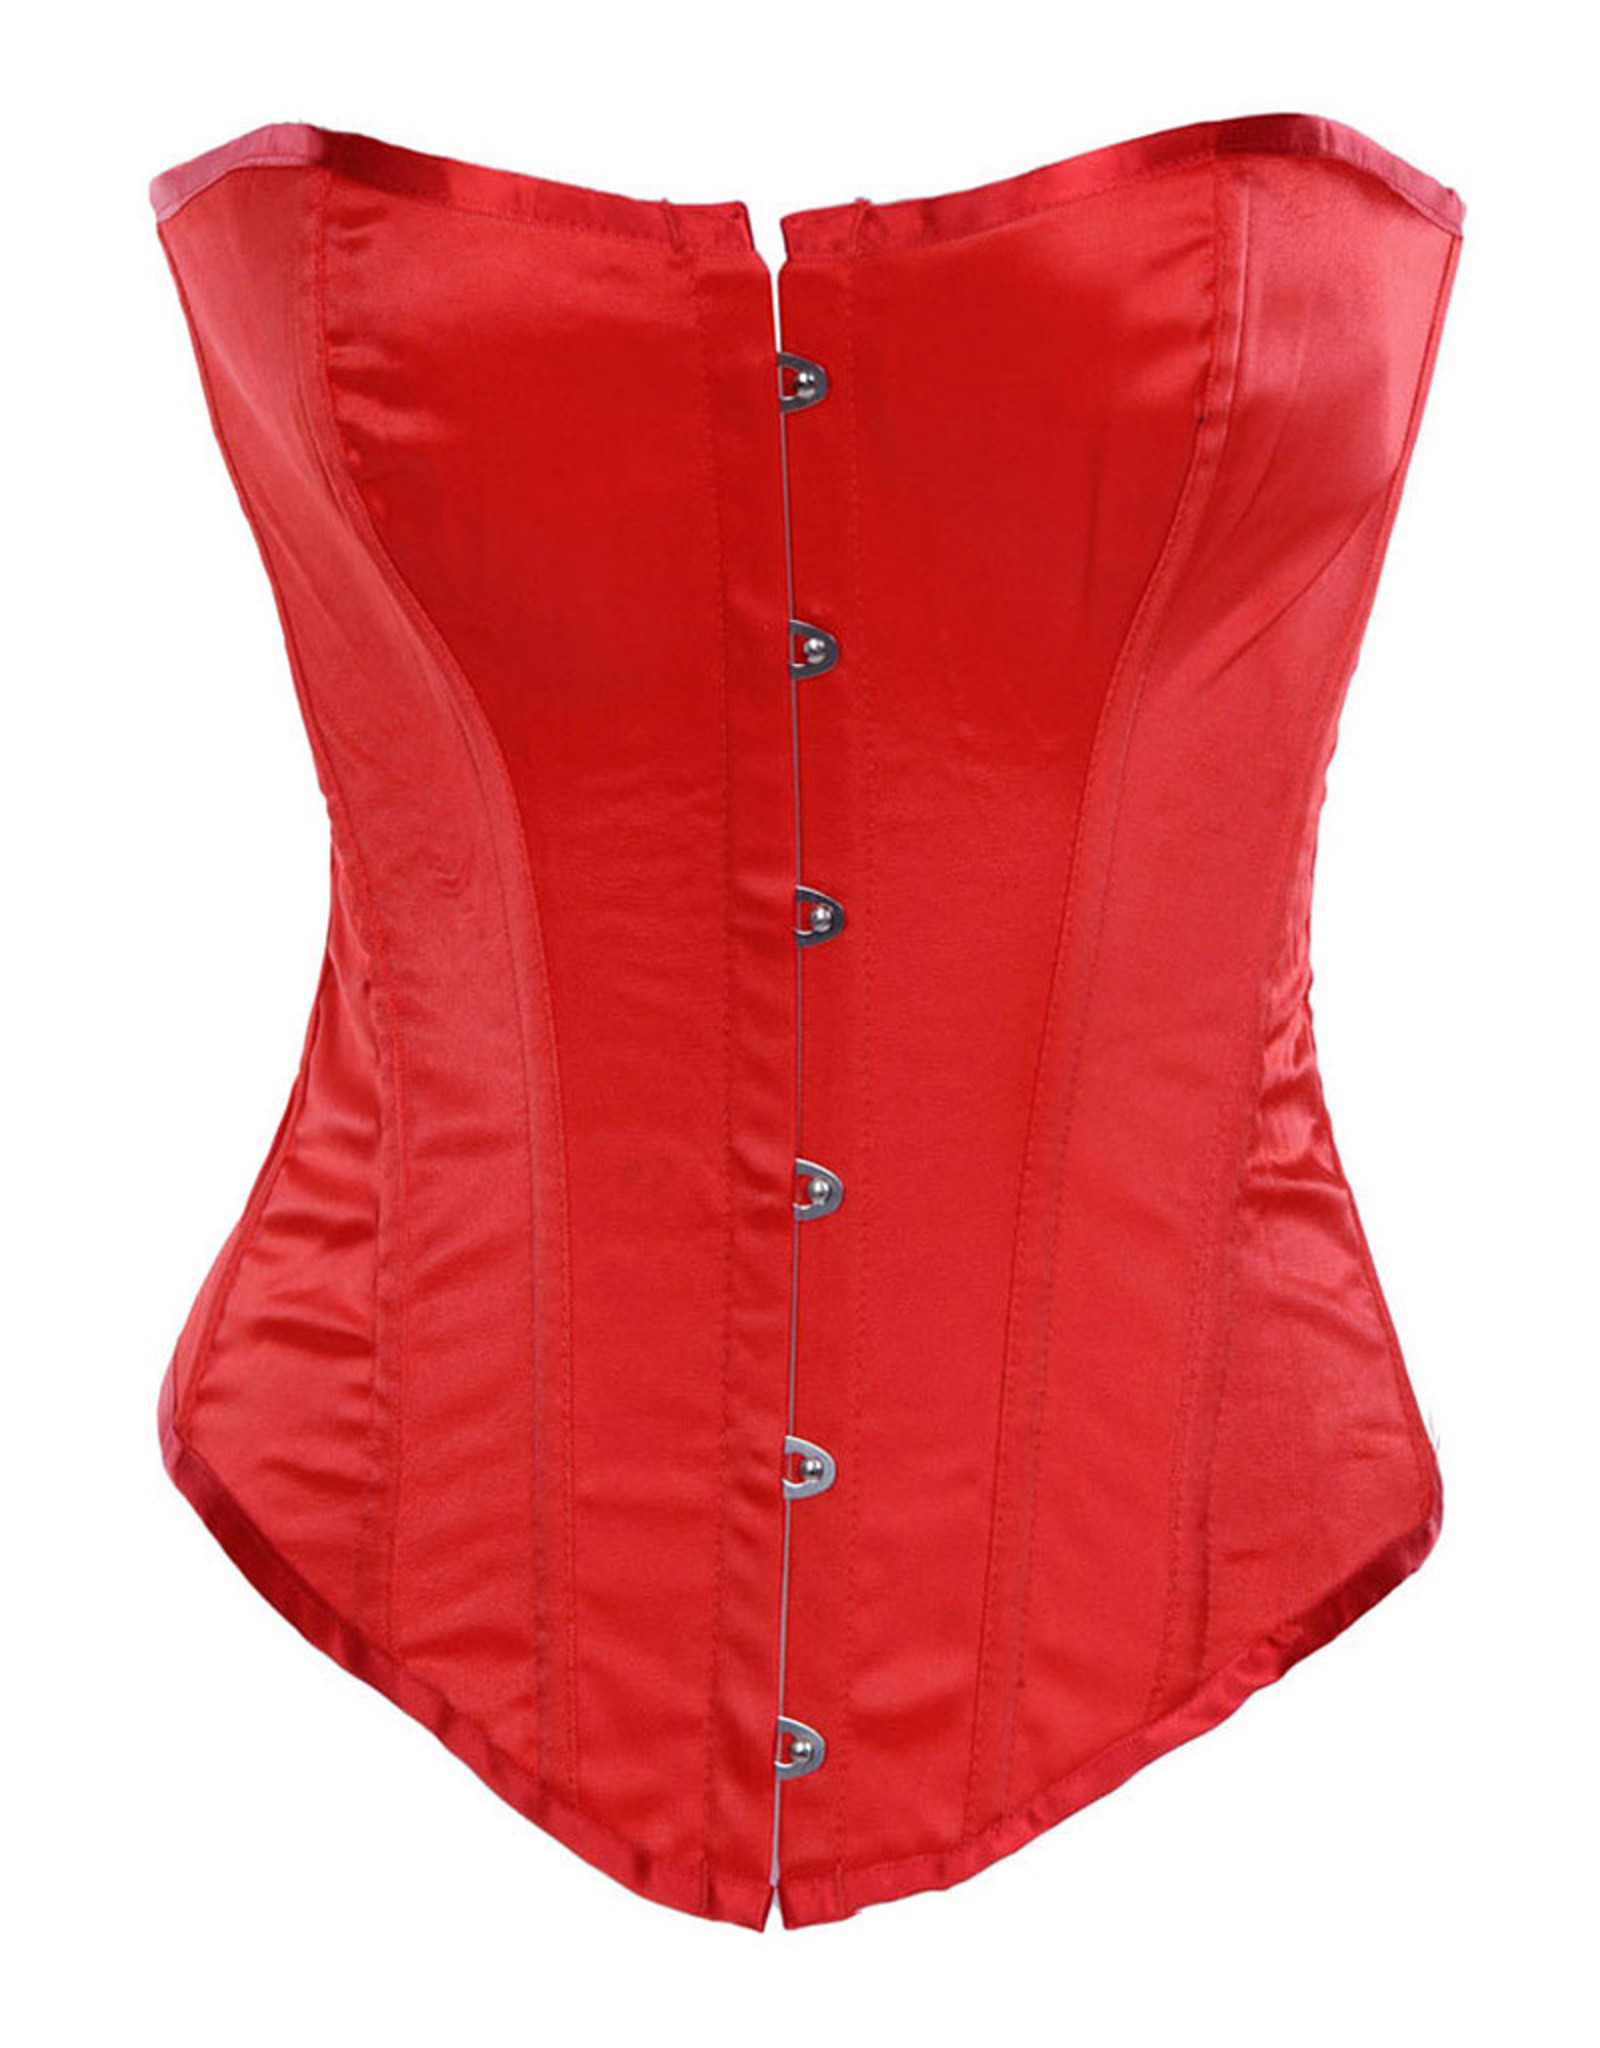 CLASSIC OVERBUST CORSET RED LARGE